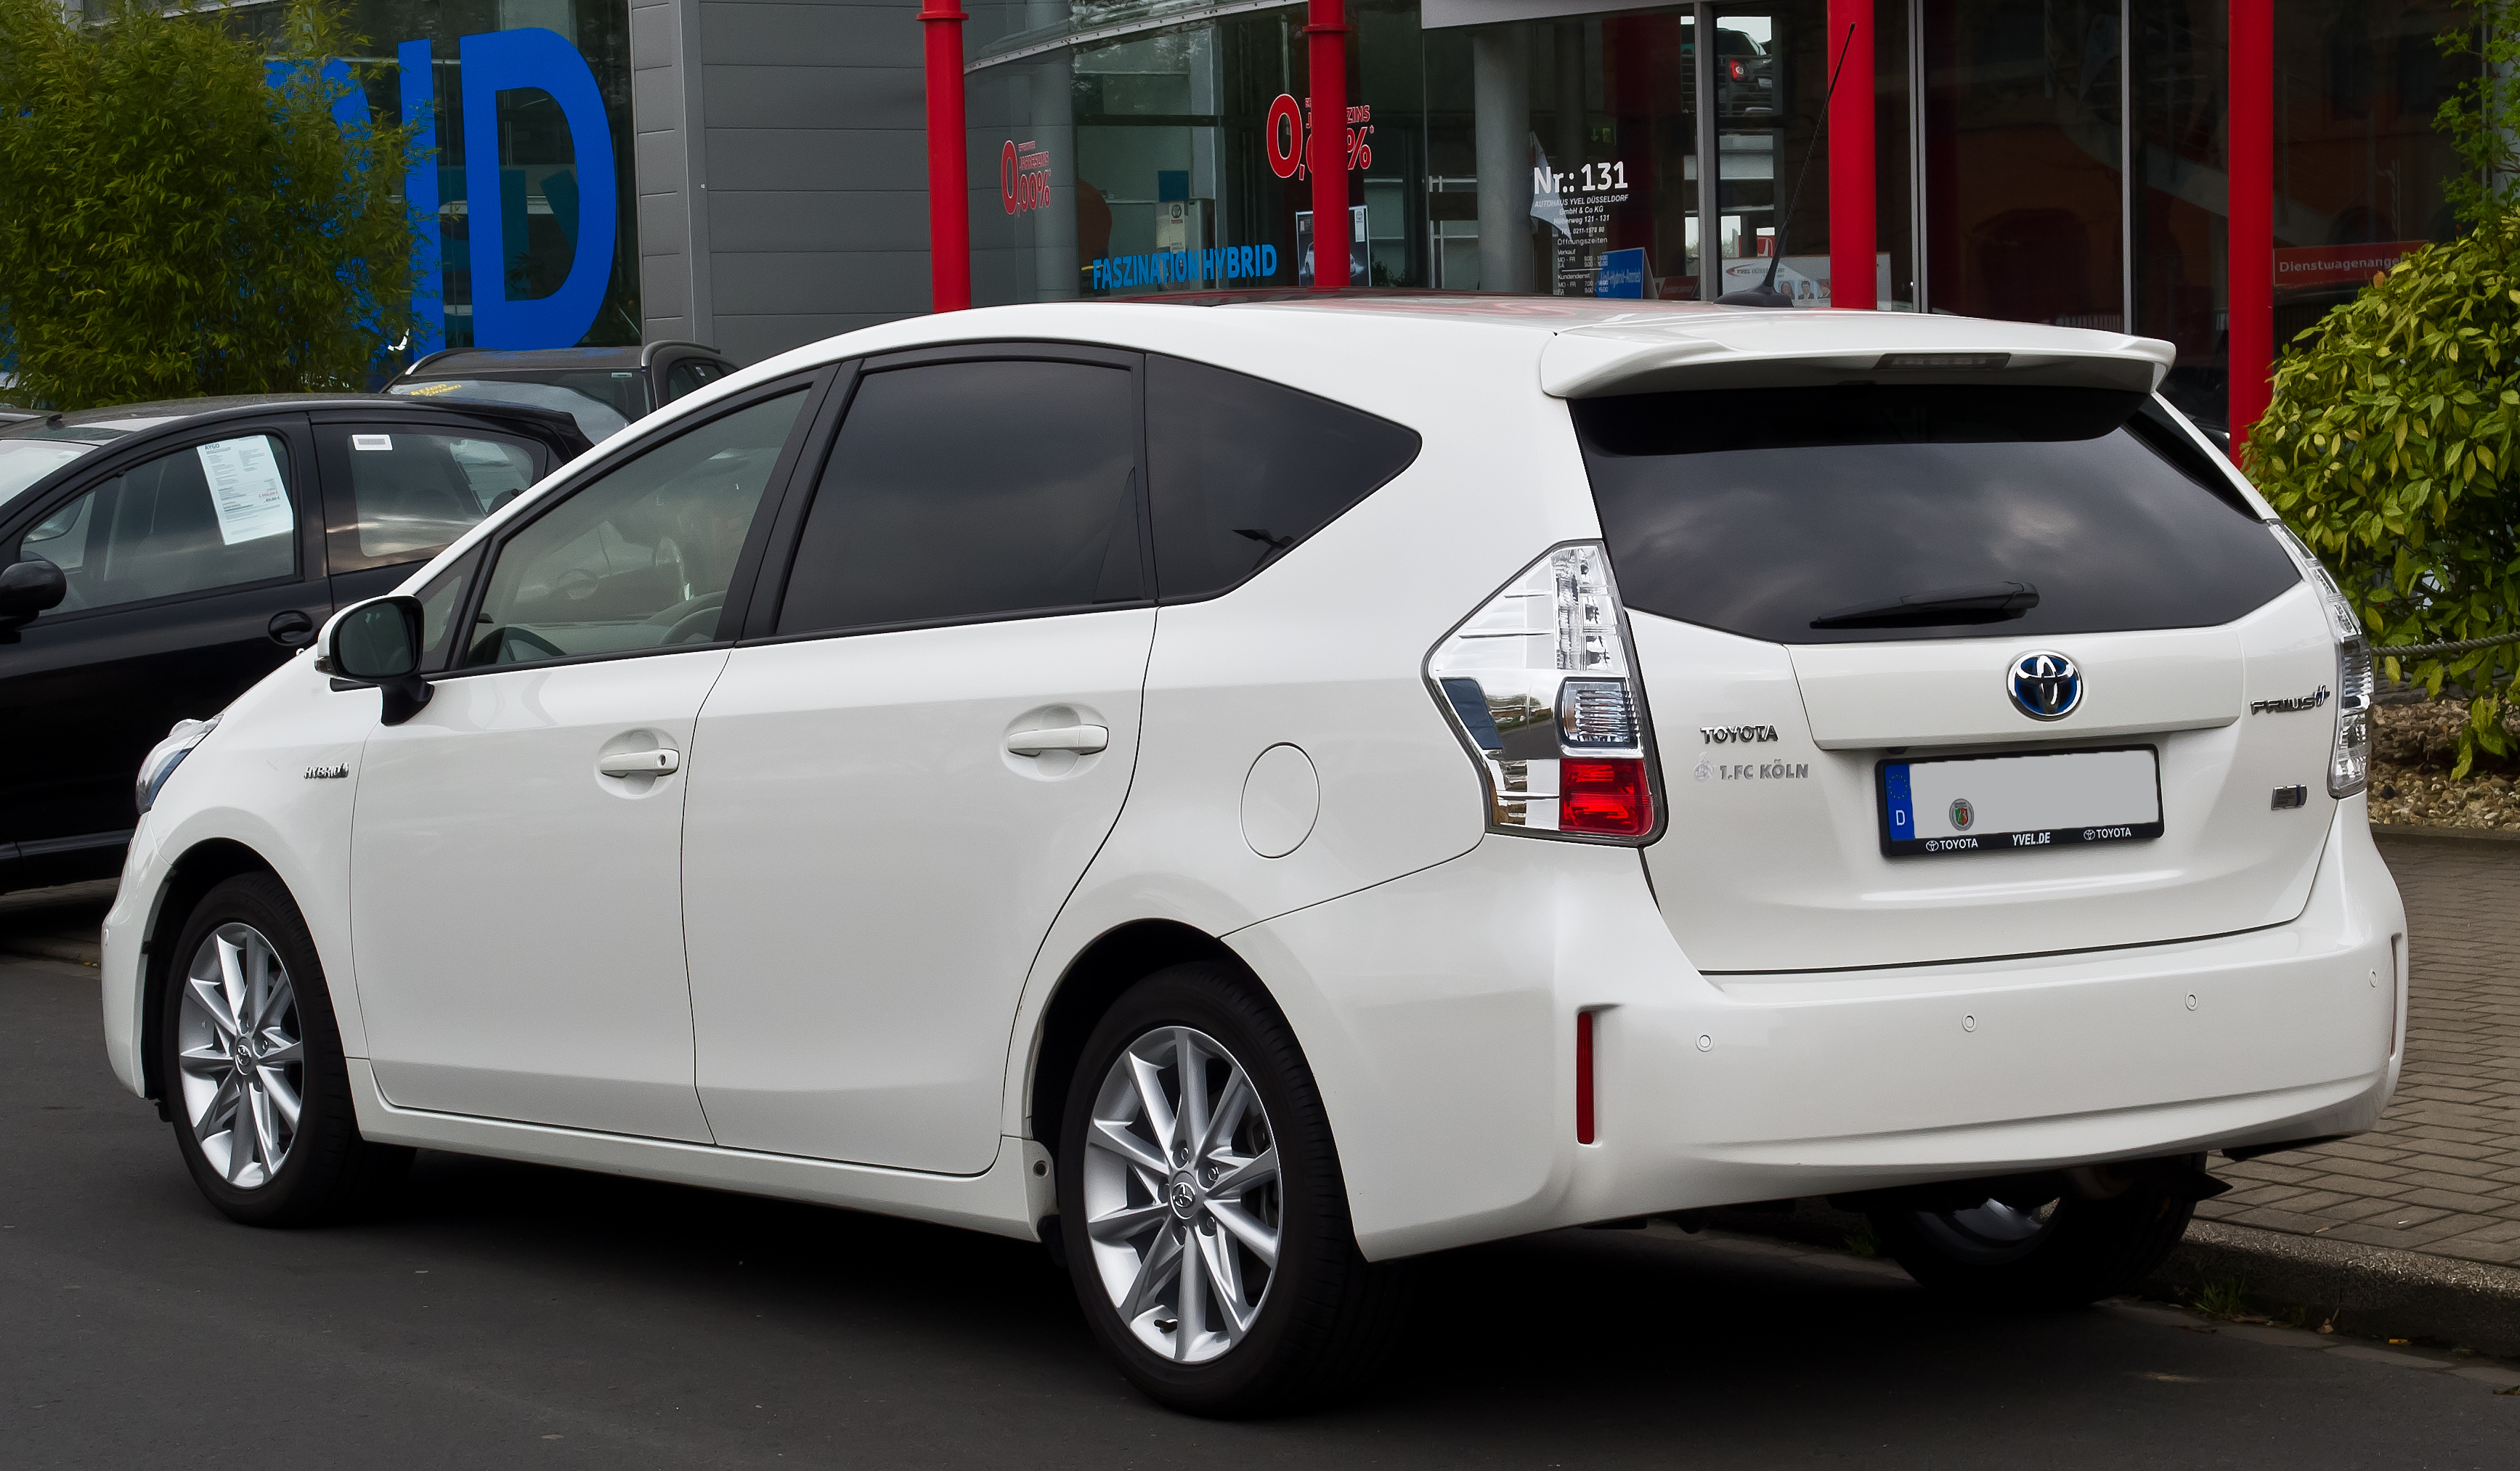 file toyota prius executive heckansicht 5 april 2014 d wikimedia commons. Black Bedroom Furniture Sets. Home Design Ideas